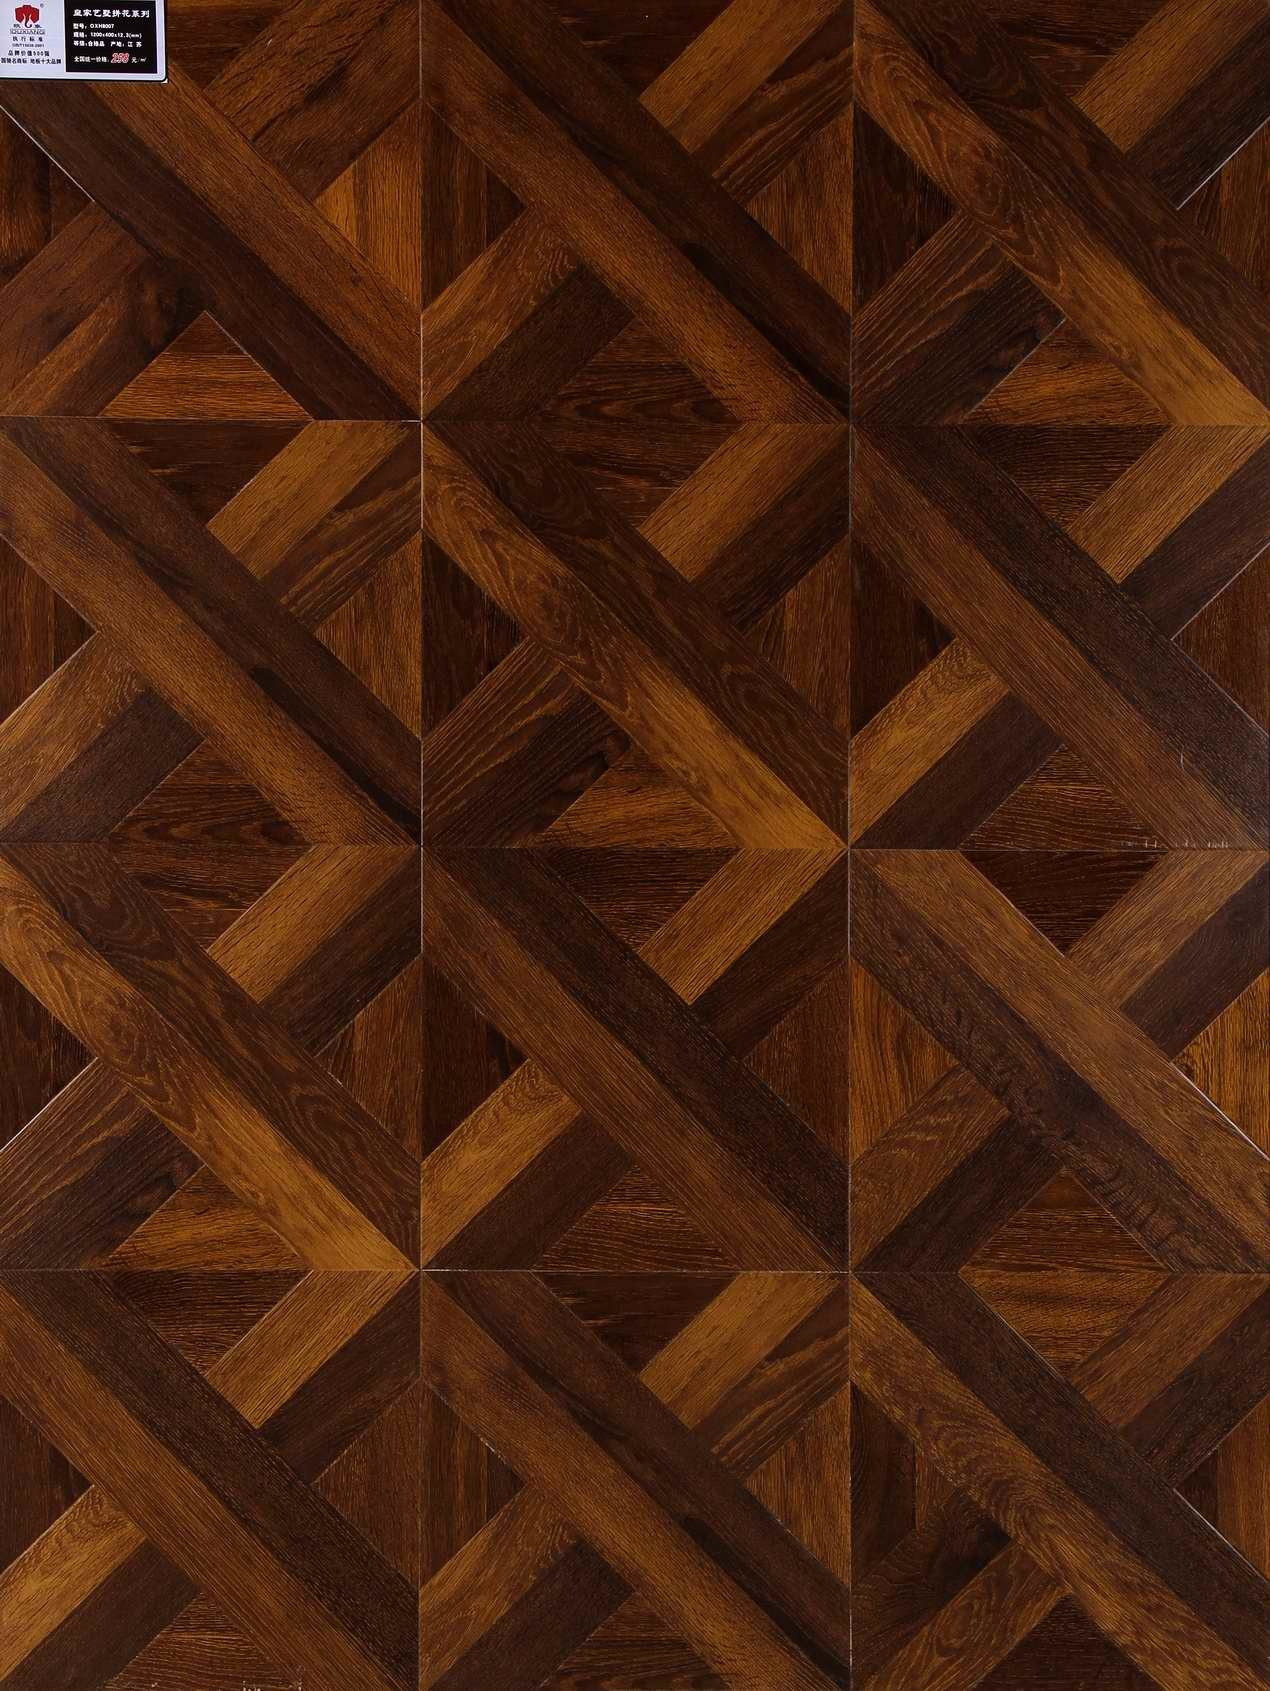 China Parquet Flooring (OXH8007) - large image for Parquet